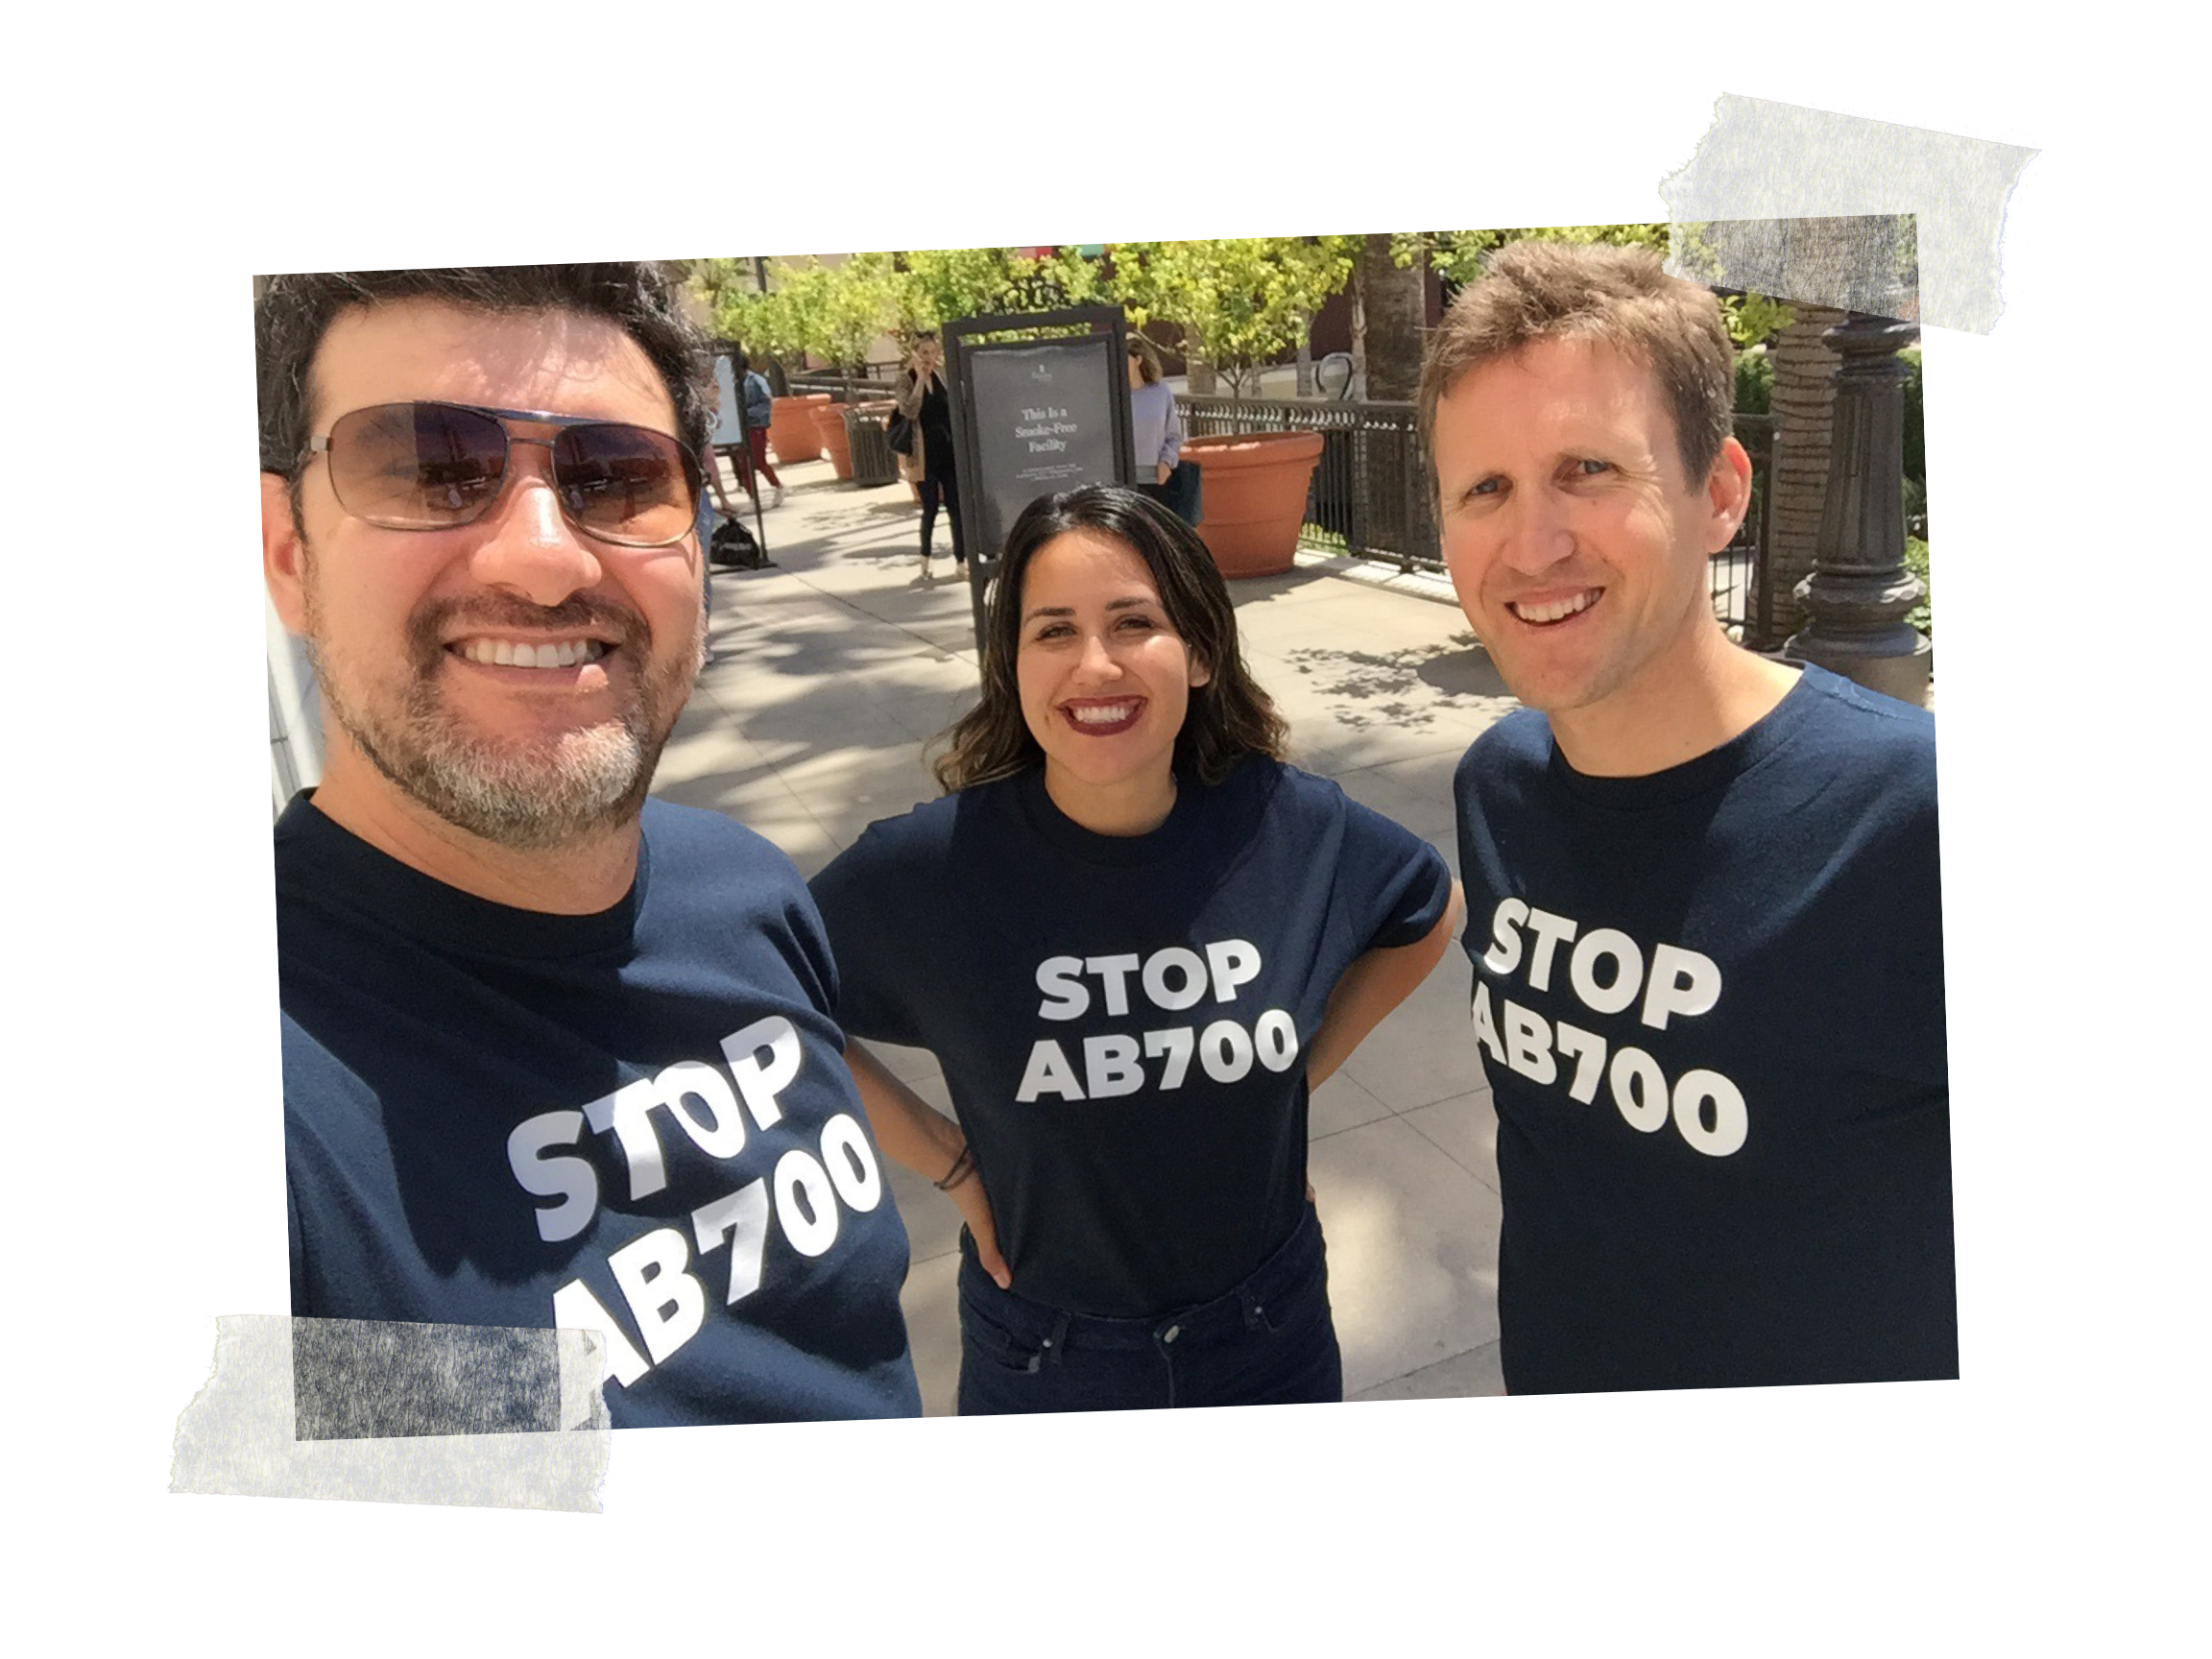 NEAVS supporters in Los Angeles helping to spread the word about AB700